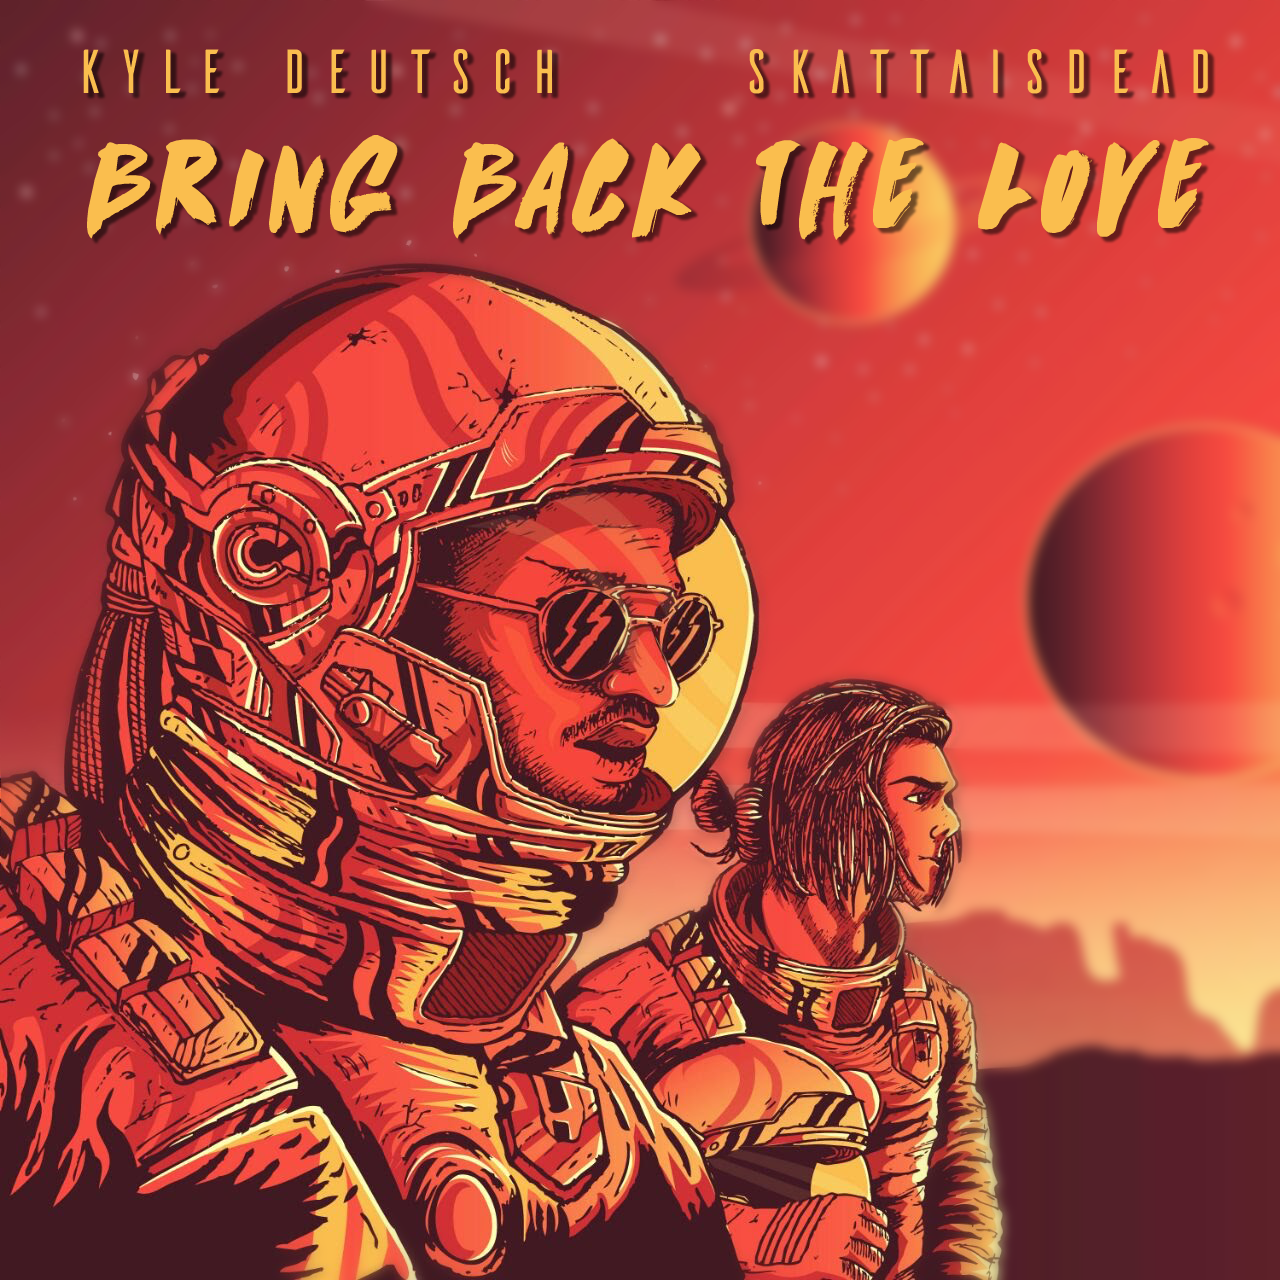 Kyle Deutsch and Skatta is Dead Bring Back the Love track cover art